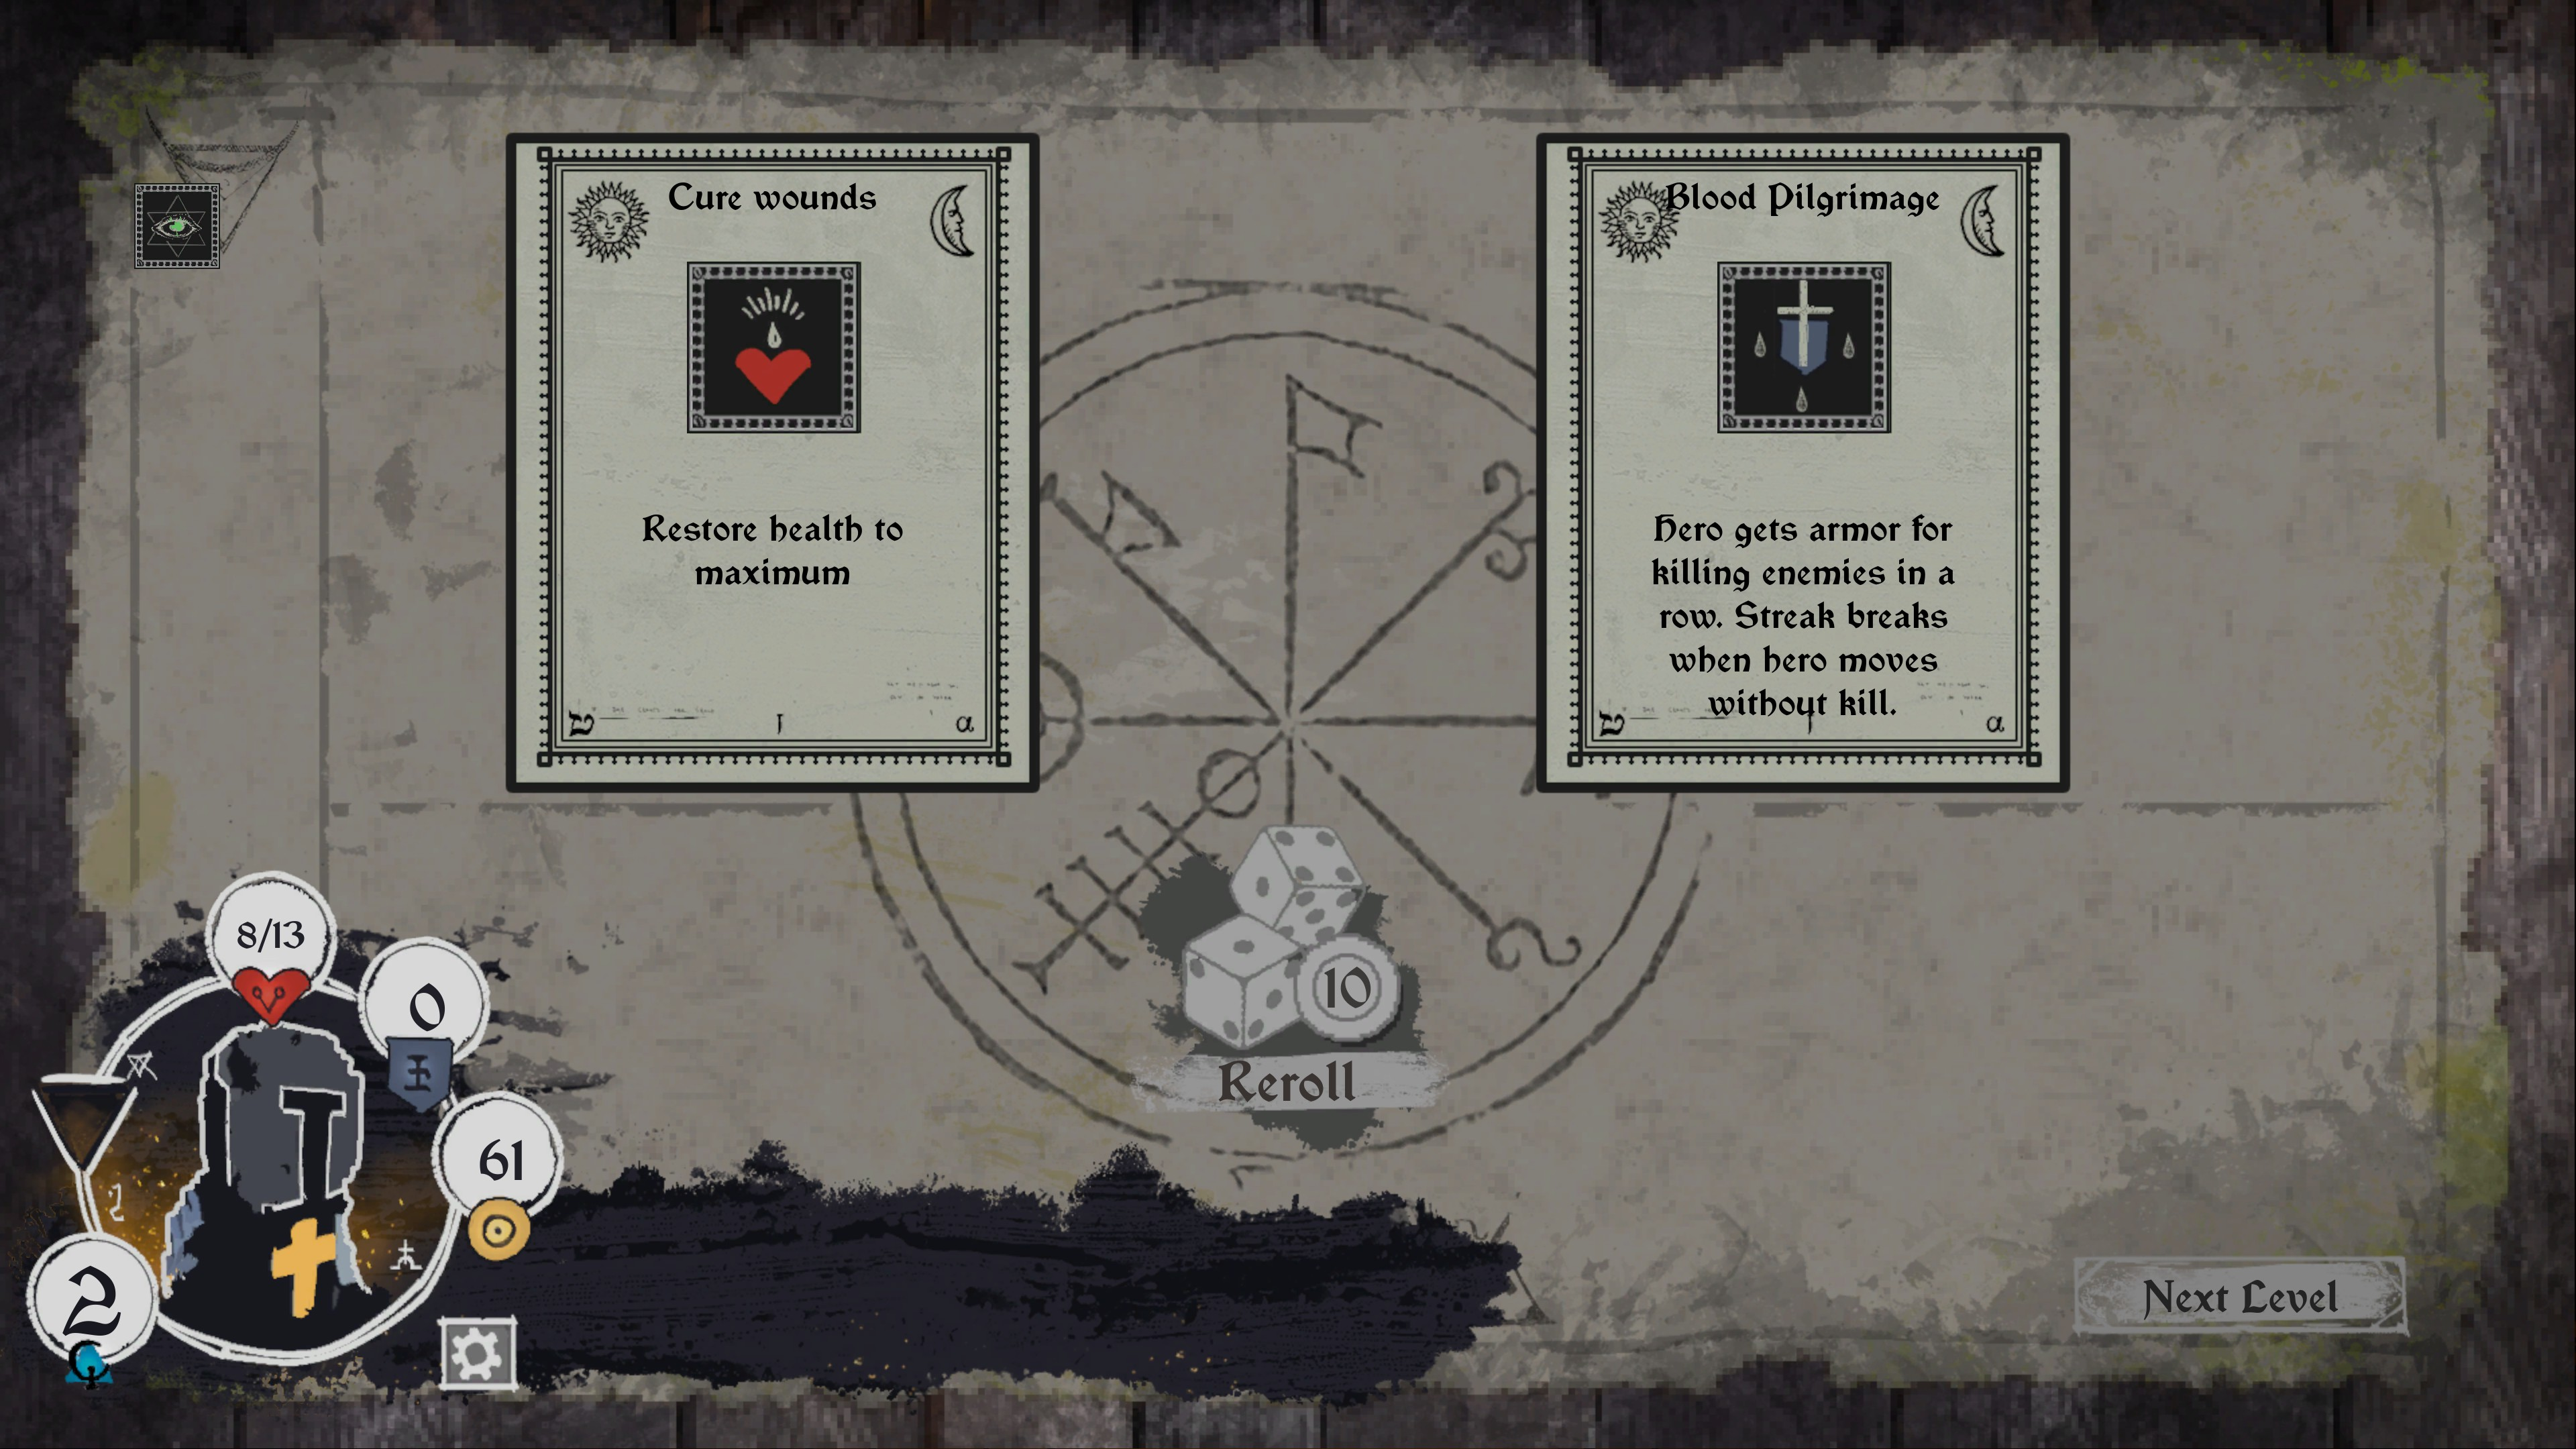 Option between cure wounds or Blood pilgrimage perk. Blood pilgrimage allows players to gain armor from a kill streak.